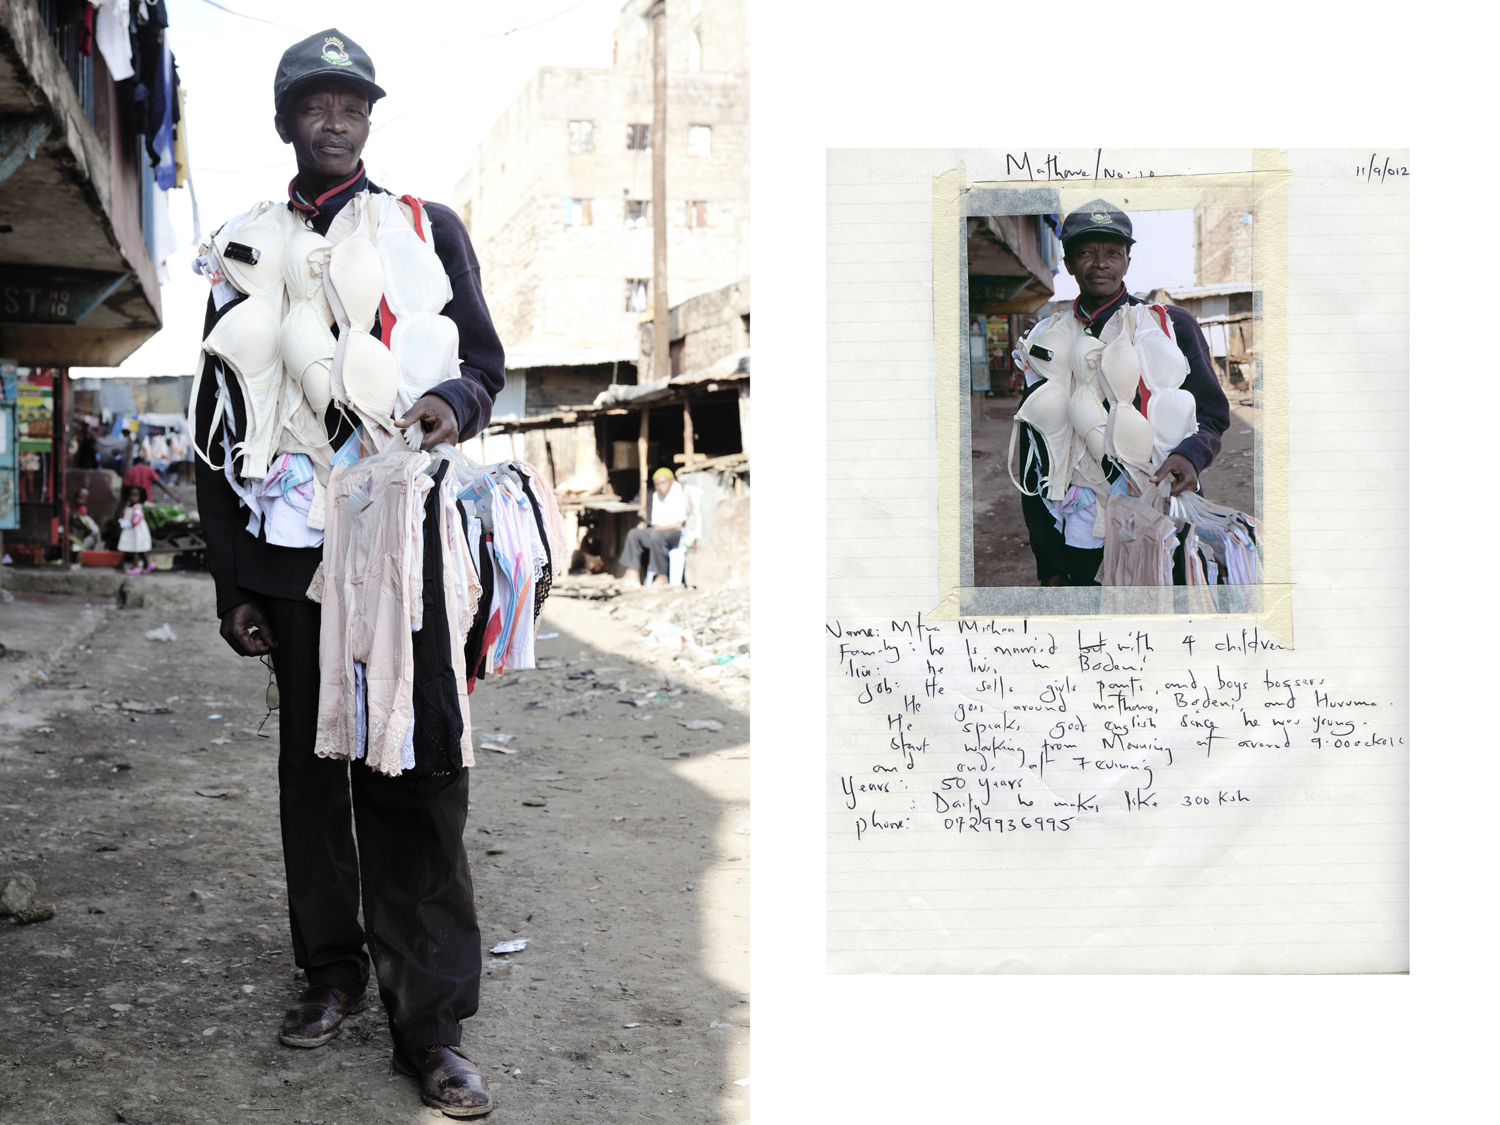 the street sellers project: a series of portraits of the street sellers in the slums of Nairobi here is Mr Mtuo Michel sells bras and female underwear in the slum of Mathare, he is 50 years old, he has 4 children and makes 300 shillings x day.